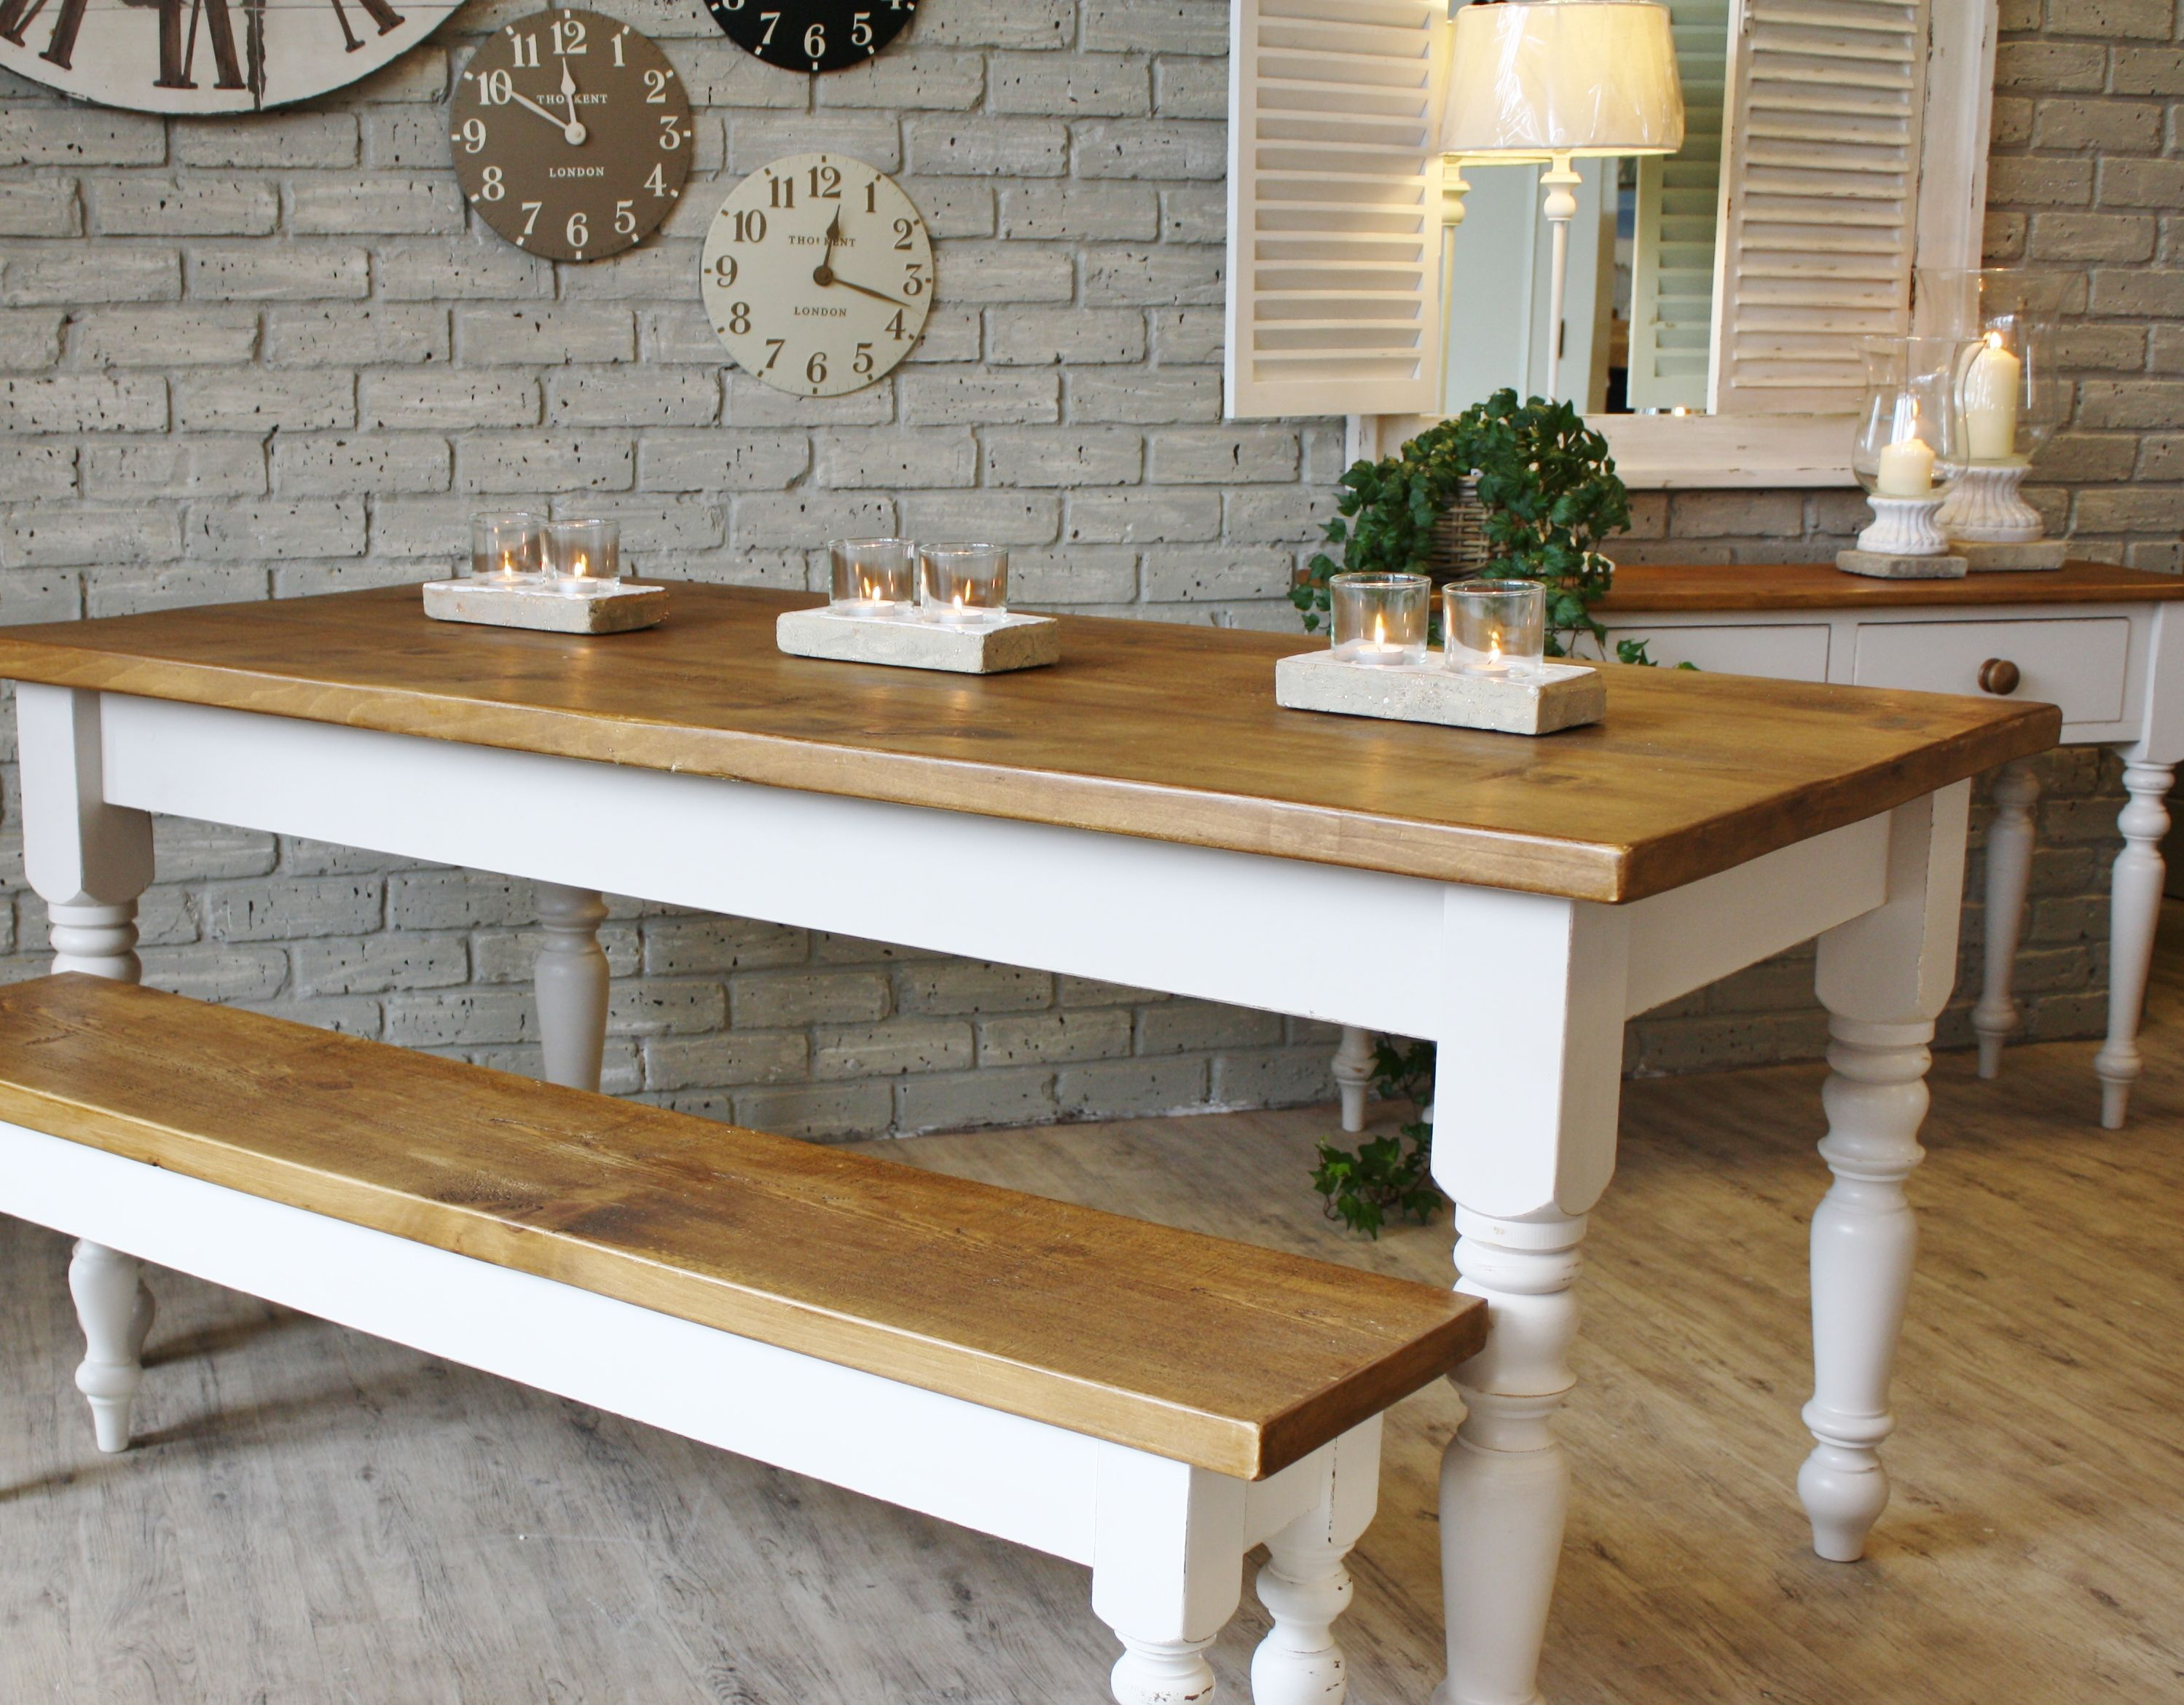 kitchen table bench white and cream farmhouse White Cream Farmhouse Wooden Kitchen Tables with Candle Holders